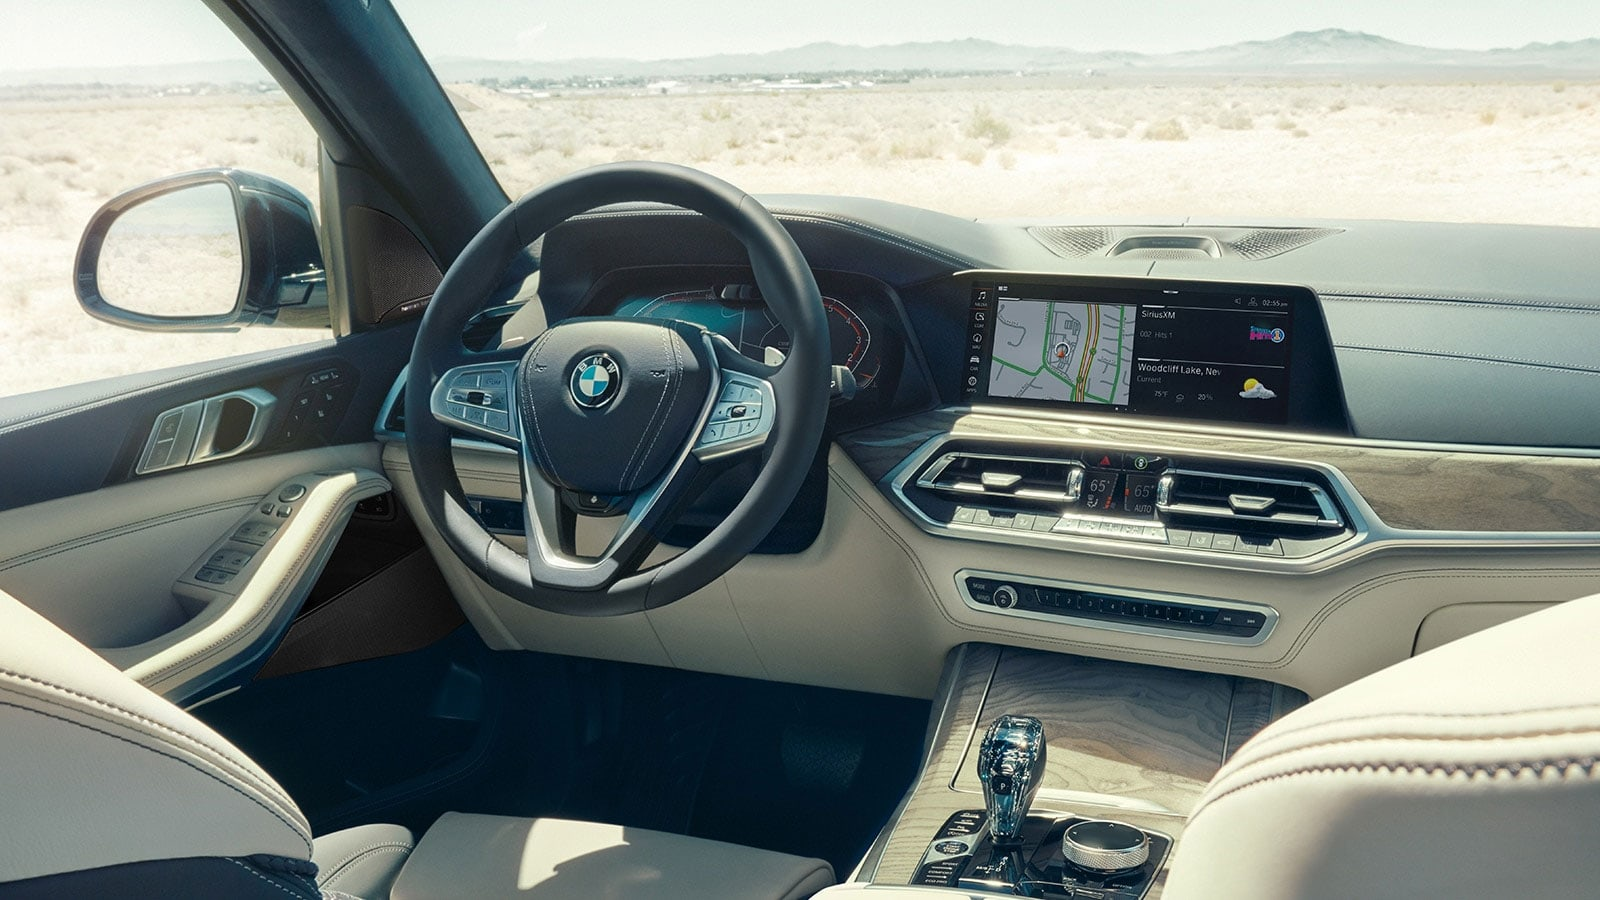 Interior view of the BMW X7 showcasing premium technology.